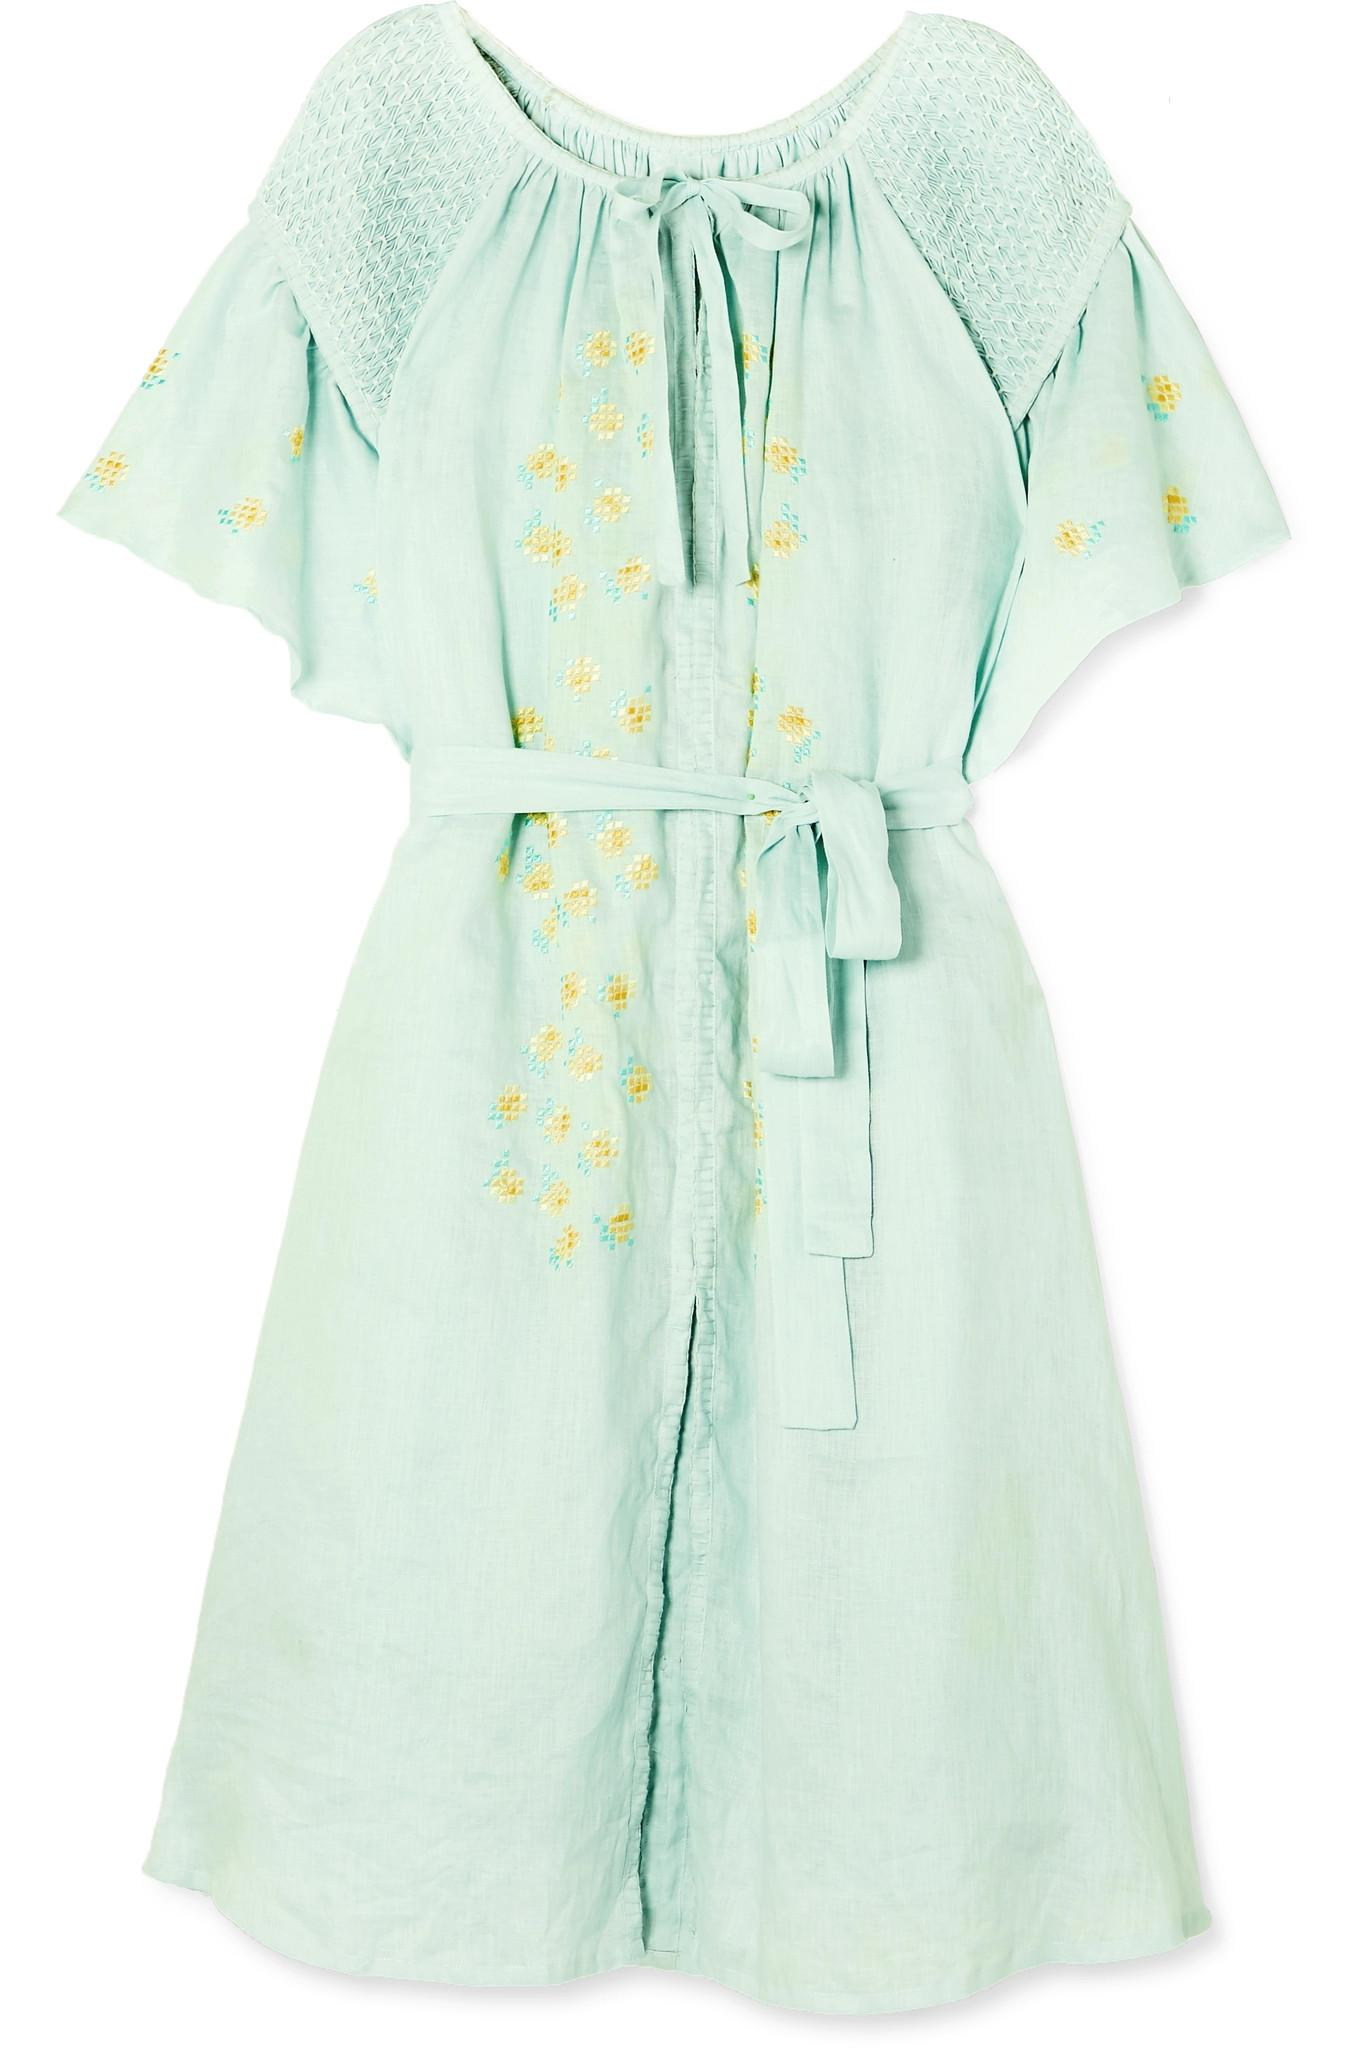 59c00547876b67 innika-choo-light-green-Hugh-Jesmok-Smocked-Embroidered-Linen-Dress.jpeg